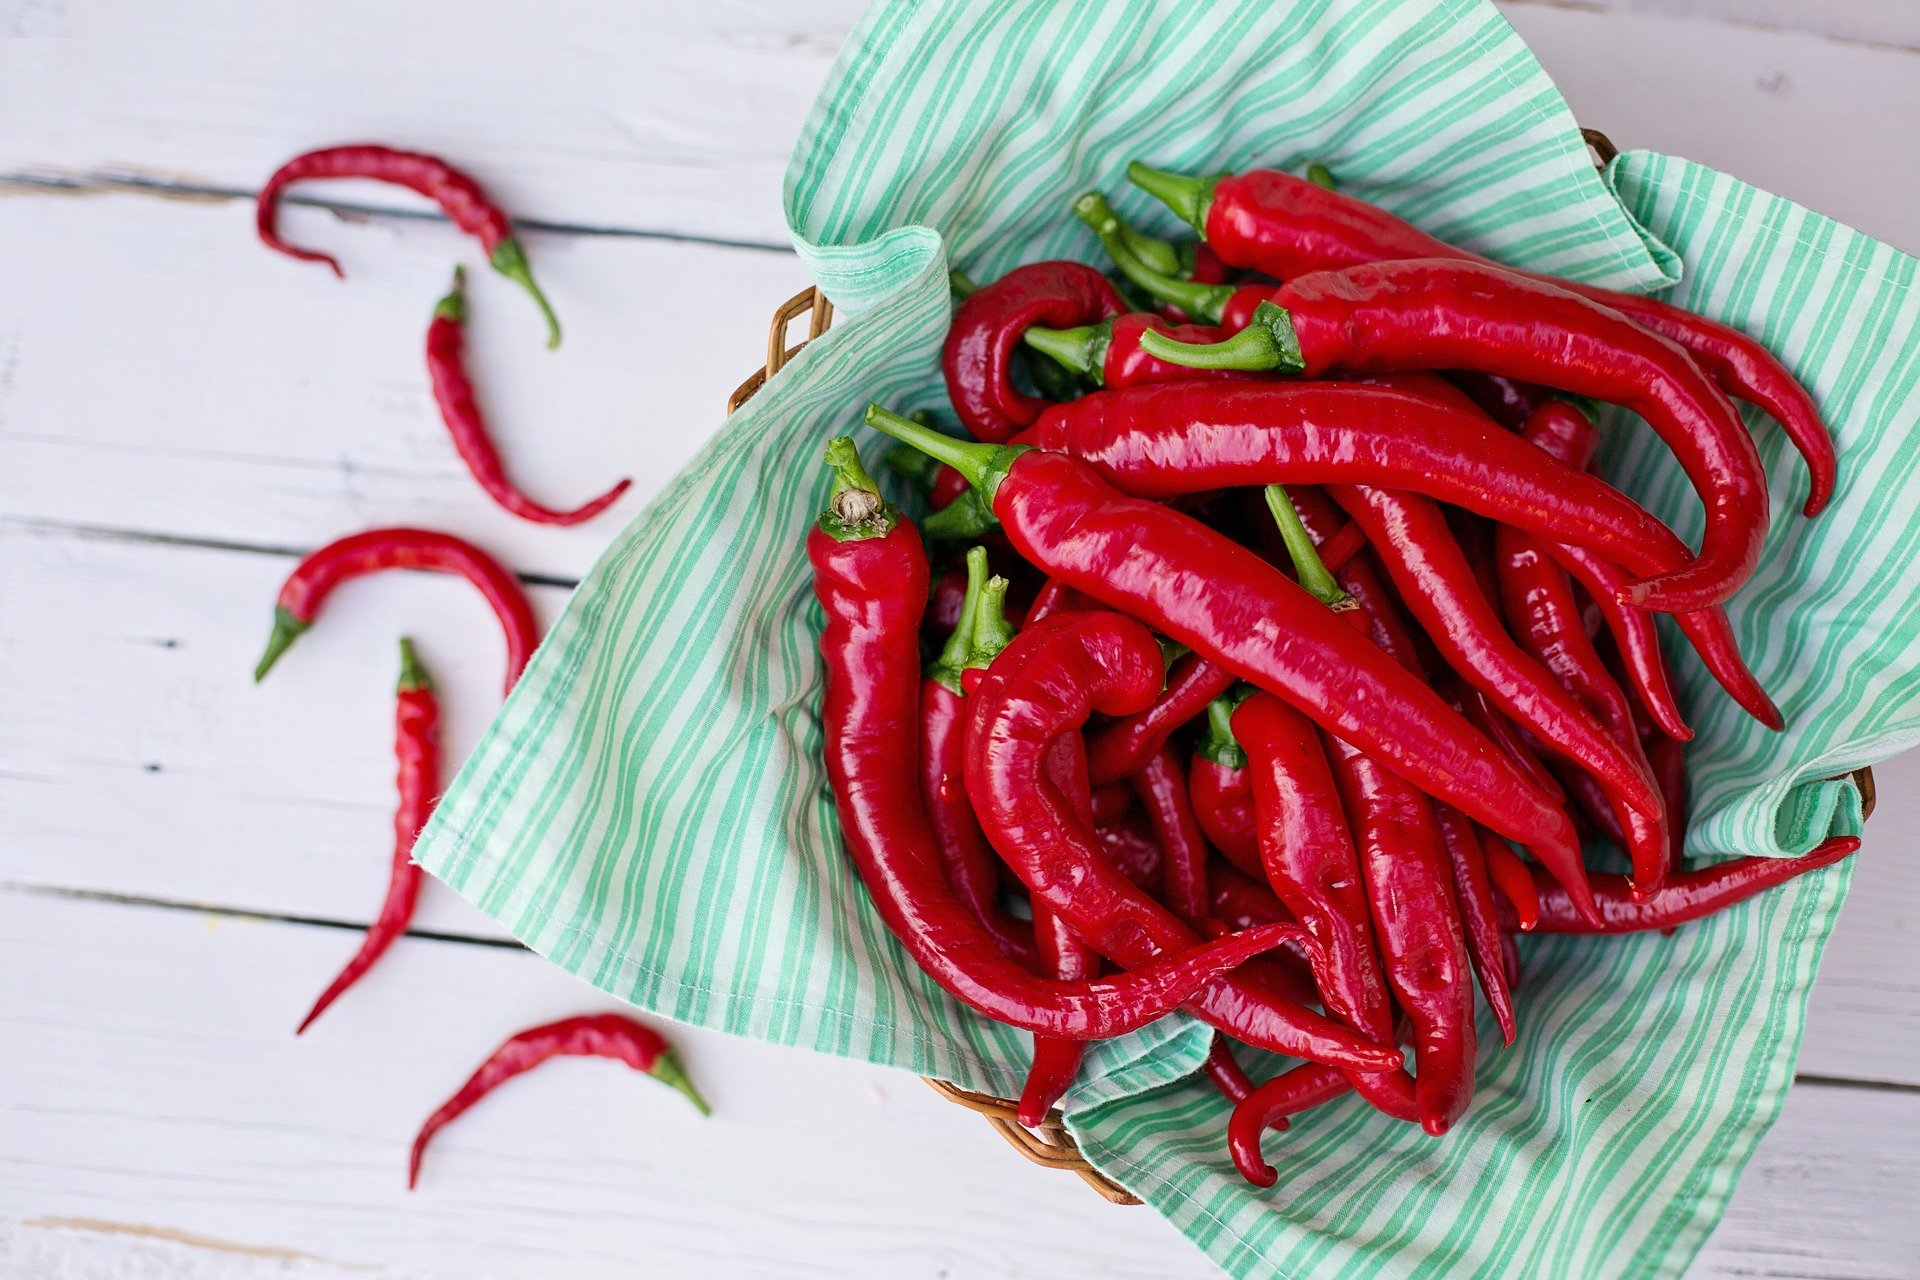 Hot Peppers May Help Your Heart